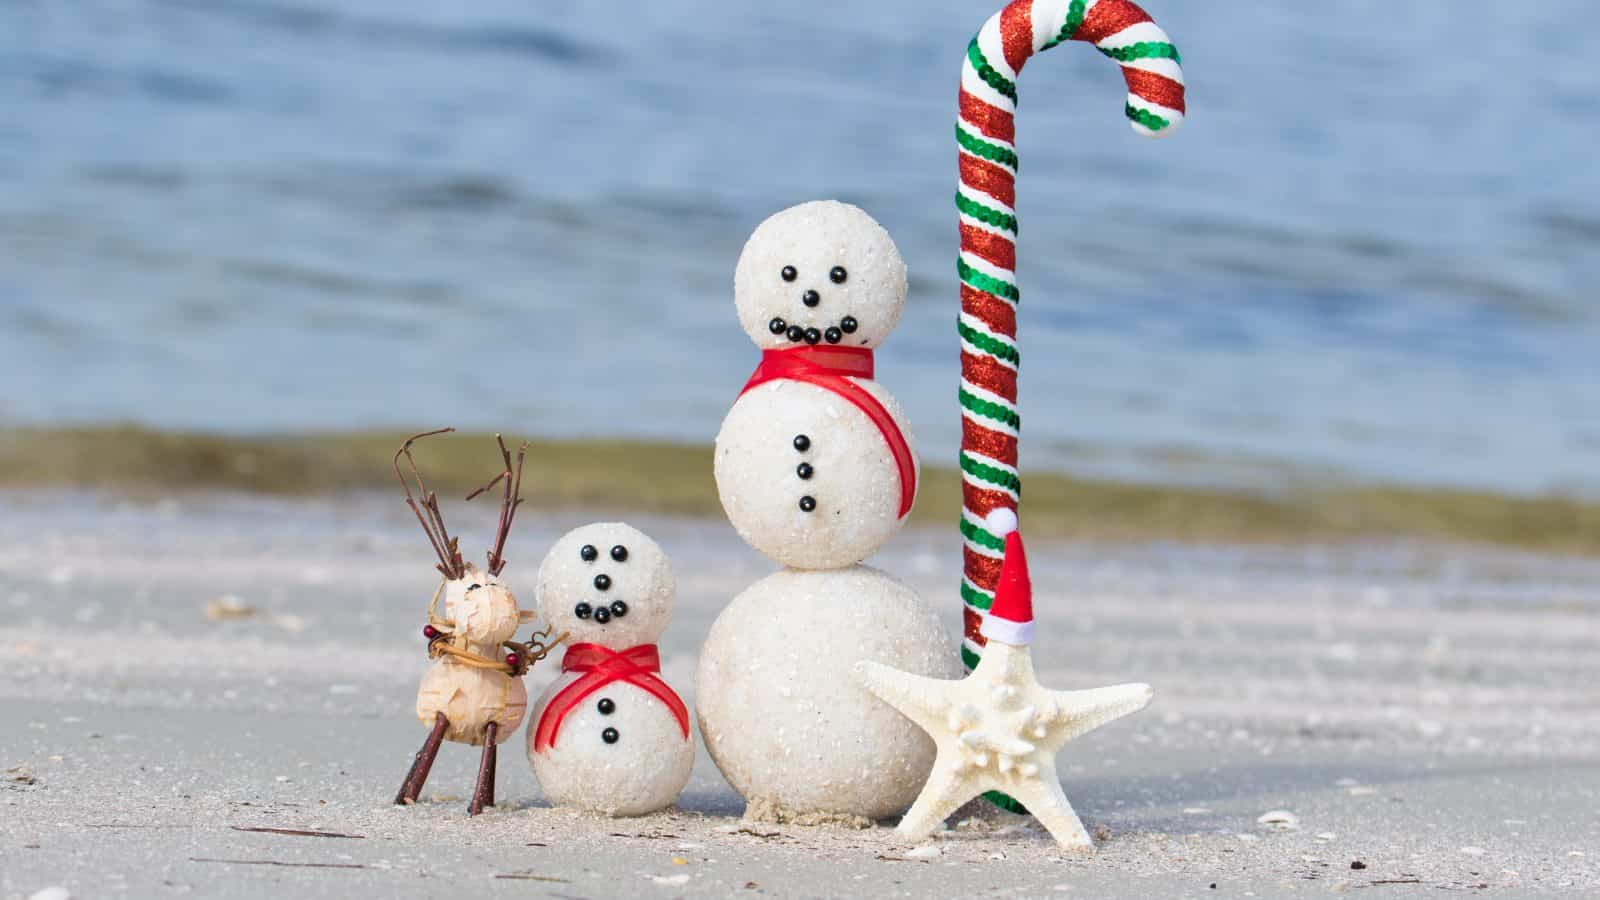 Snowmen made of sand sit on a beach in Florida in winter.